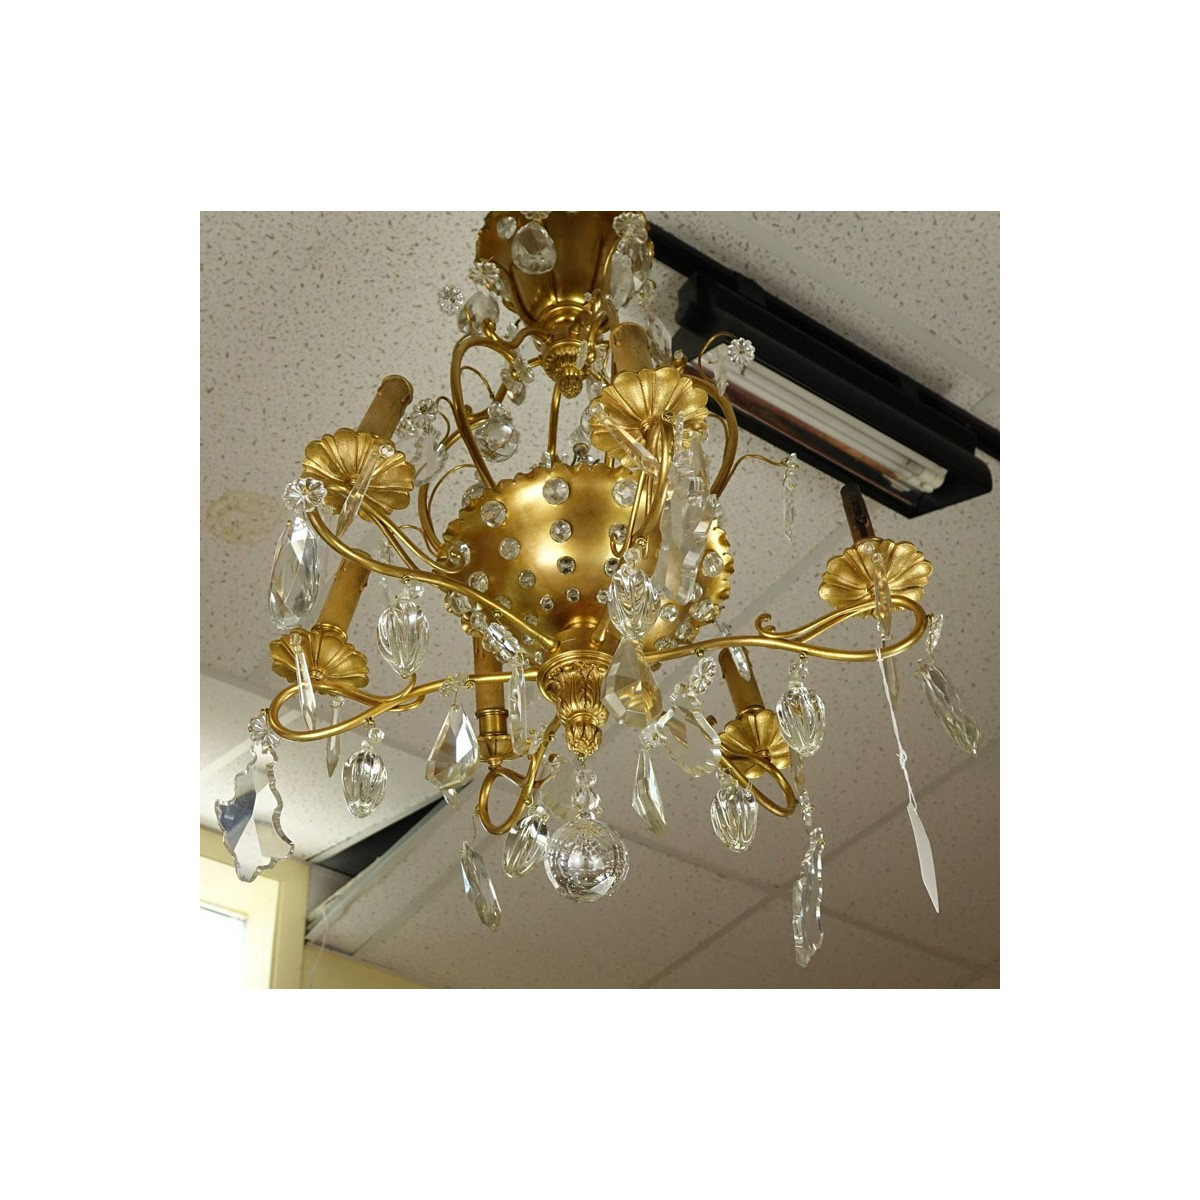 Late 19th/Early 20th Century Rococo Style Gilt Bronze and Crystal 6-Arm Chandelier. Decorated with